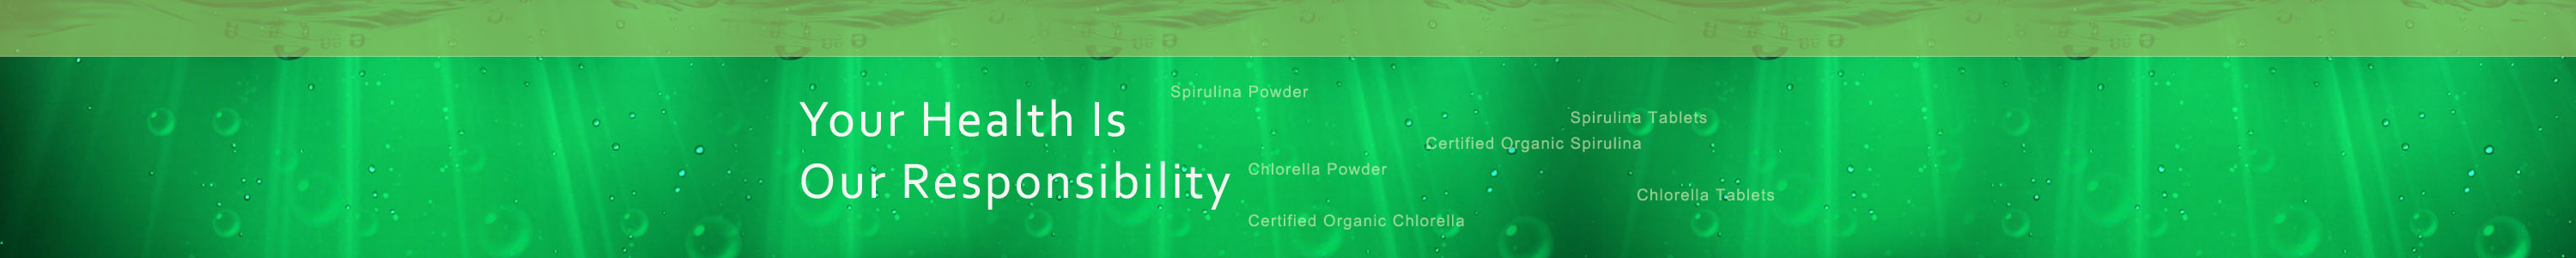 Spirulina - your future, our responsibility